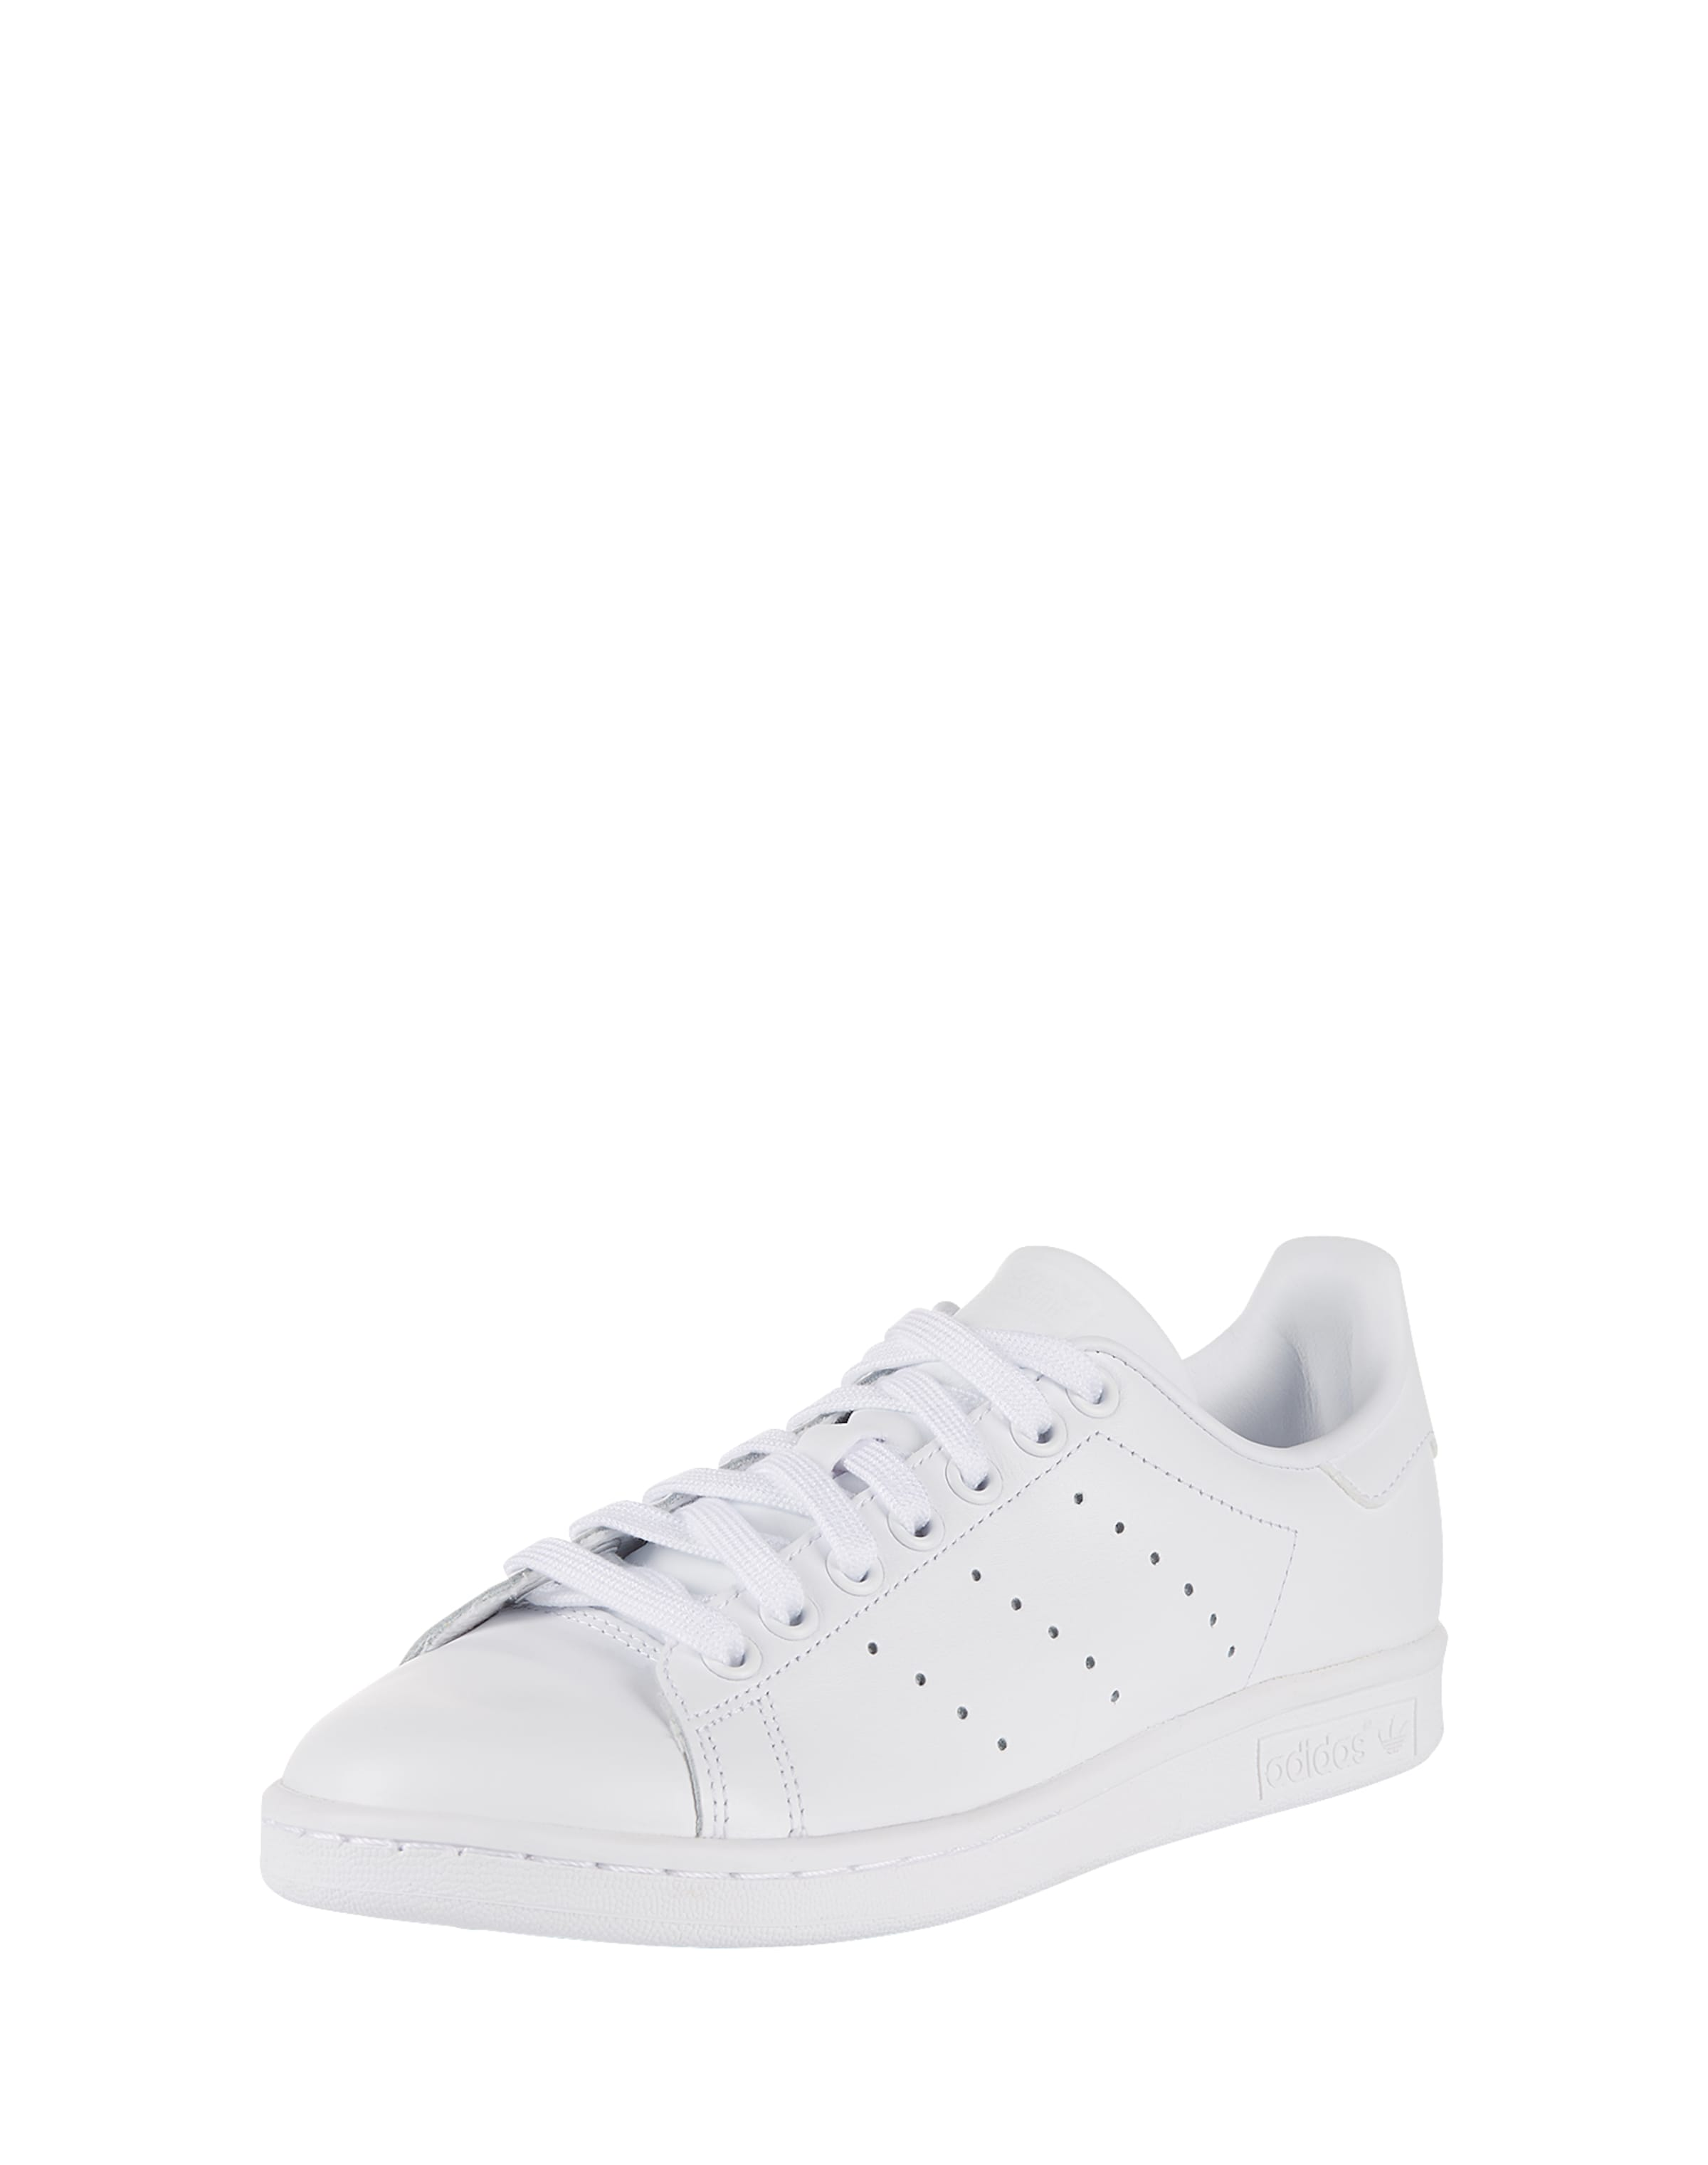 ADIDAS ORIGINALS ORIGINALS ADIDAS | Turnschuhe Stan Smith 52b416